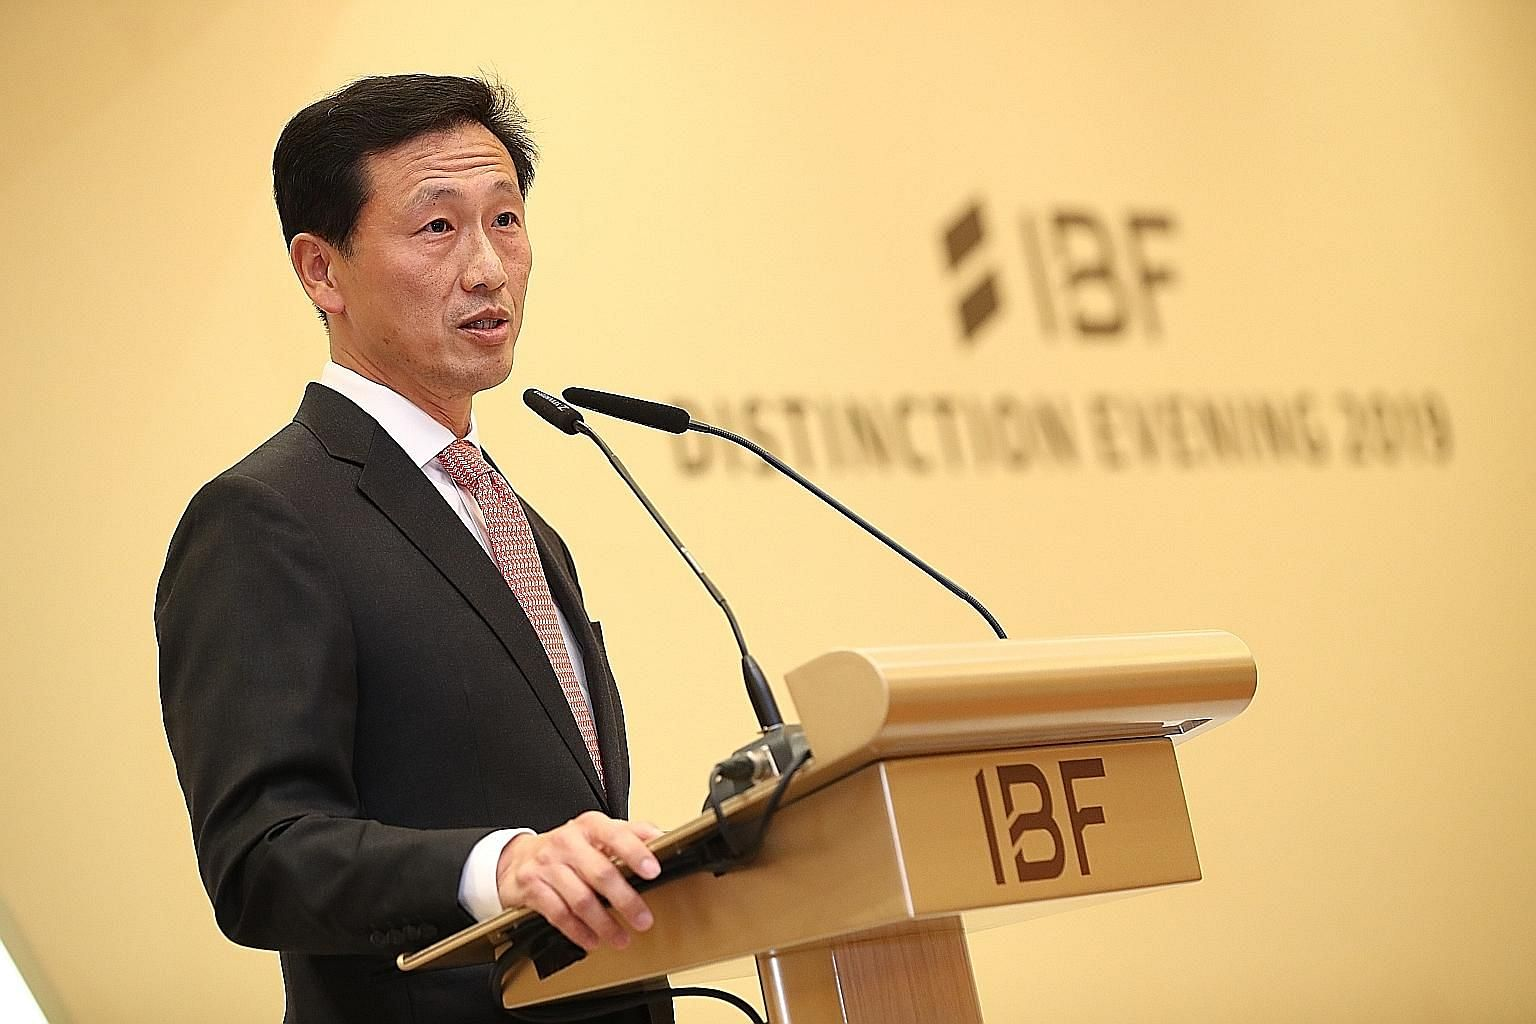 Above: OCBC Bank's consumer financial services head Dennis Tan was one of five recipients of the IBF Distinguished Fellow Award yesterday. Left: Education Minister Ong Ye Kung, speaking at the IBF's gala dinner yesterday, encouraged finance professio